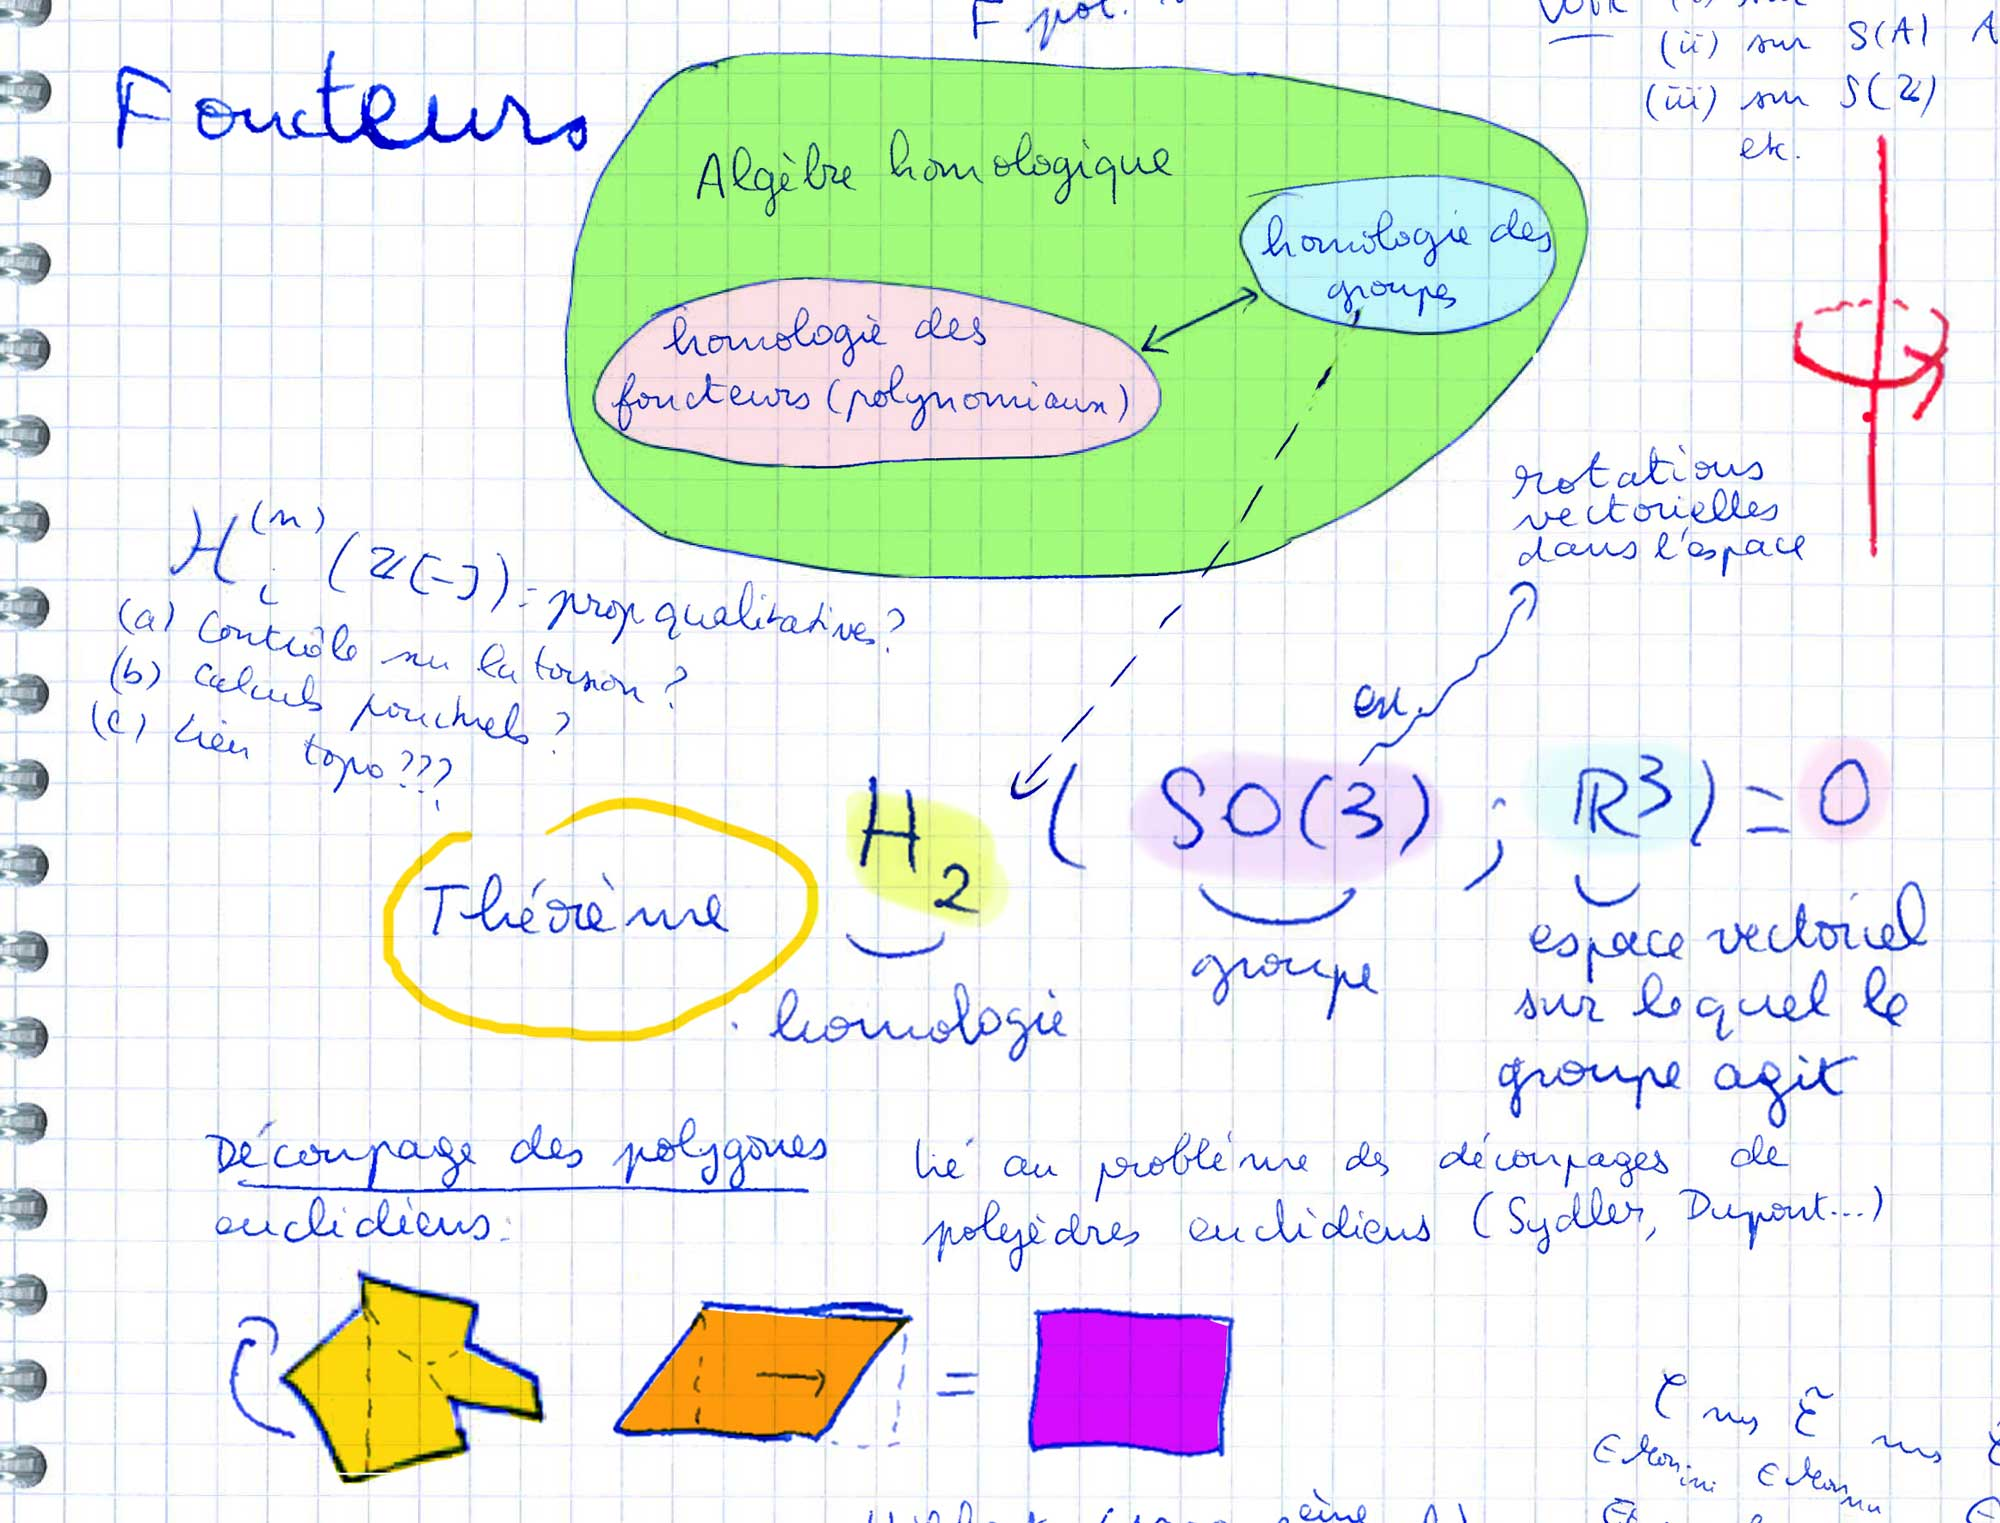 n+1 mathematiques impromptu scientifique